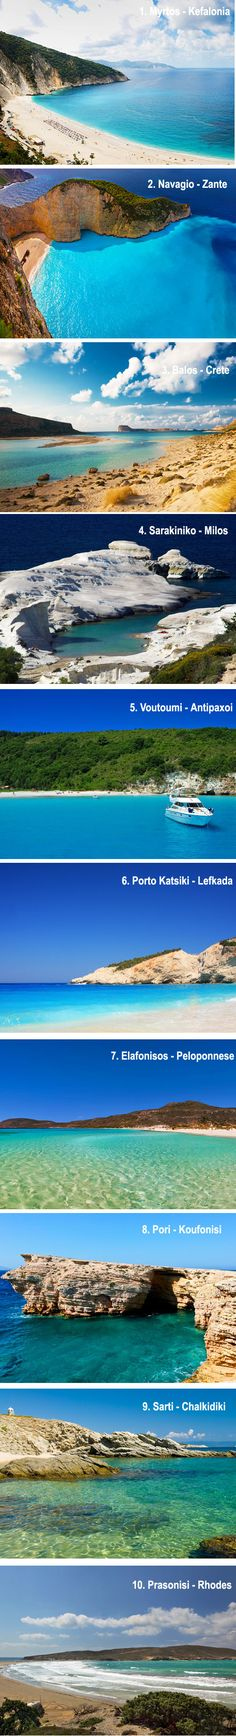 Top 10 Exotic Beaches in Greece Any of these would do! Beautiful!